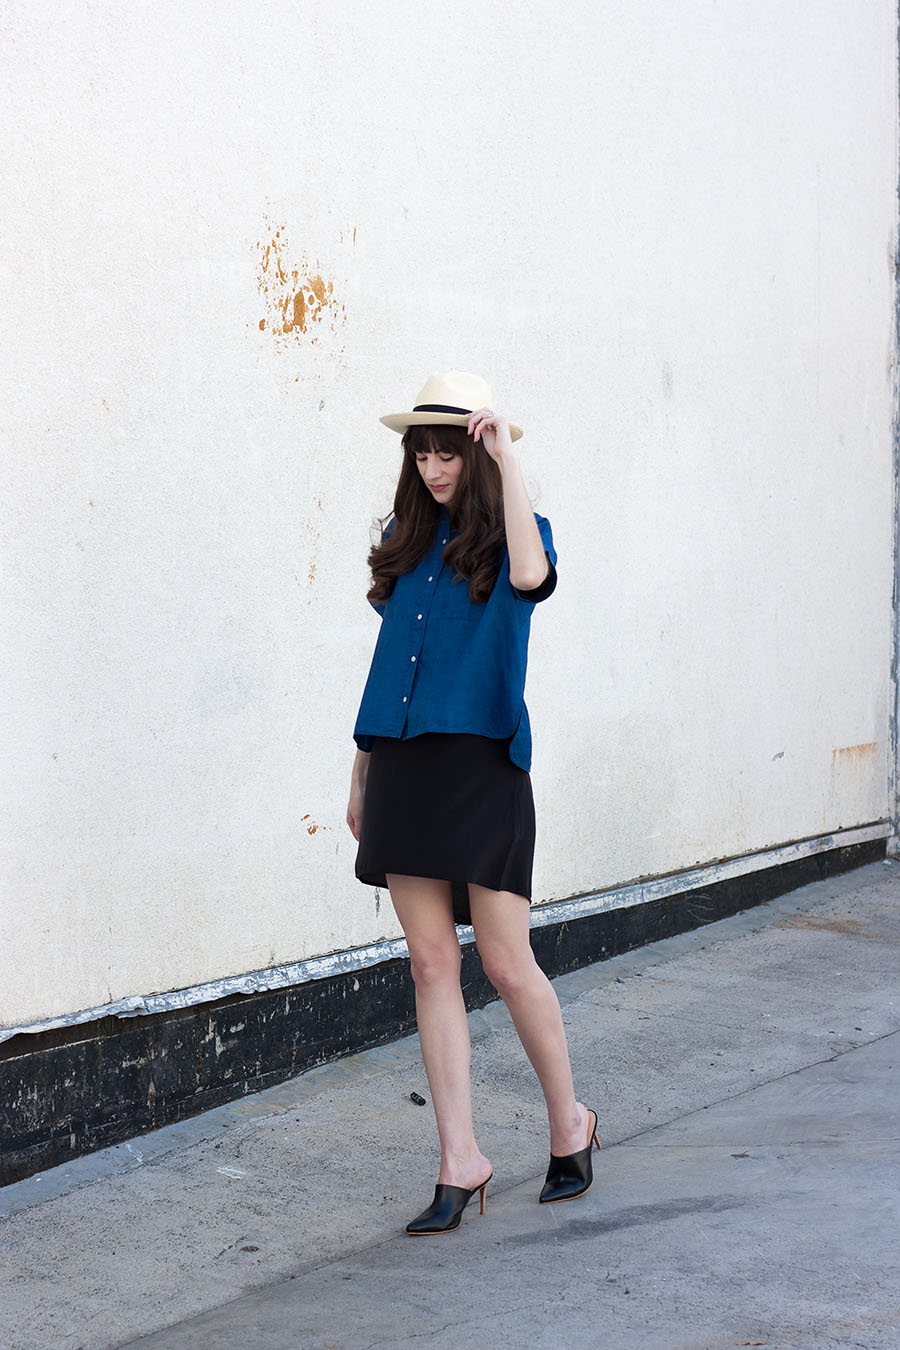 0abee0176cff Minimal Summer Style - Jeans and a Teacup